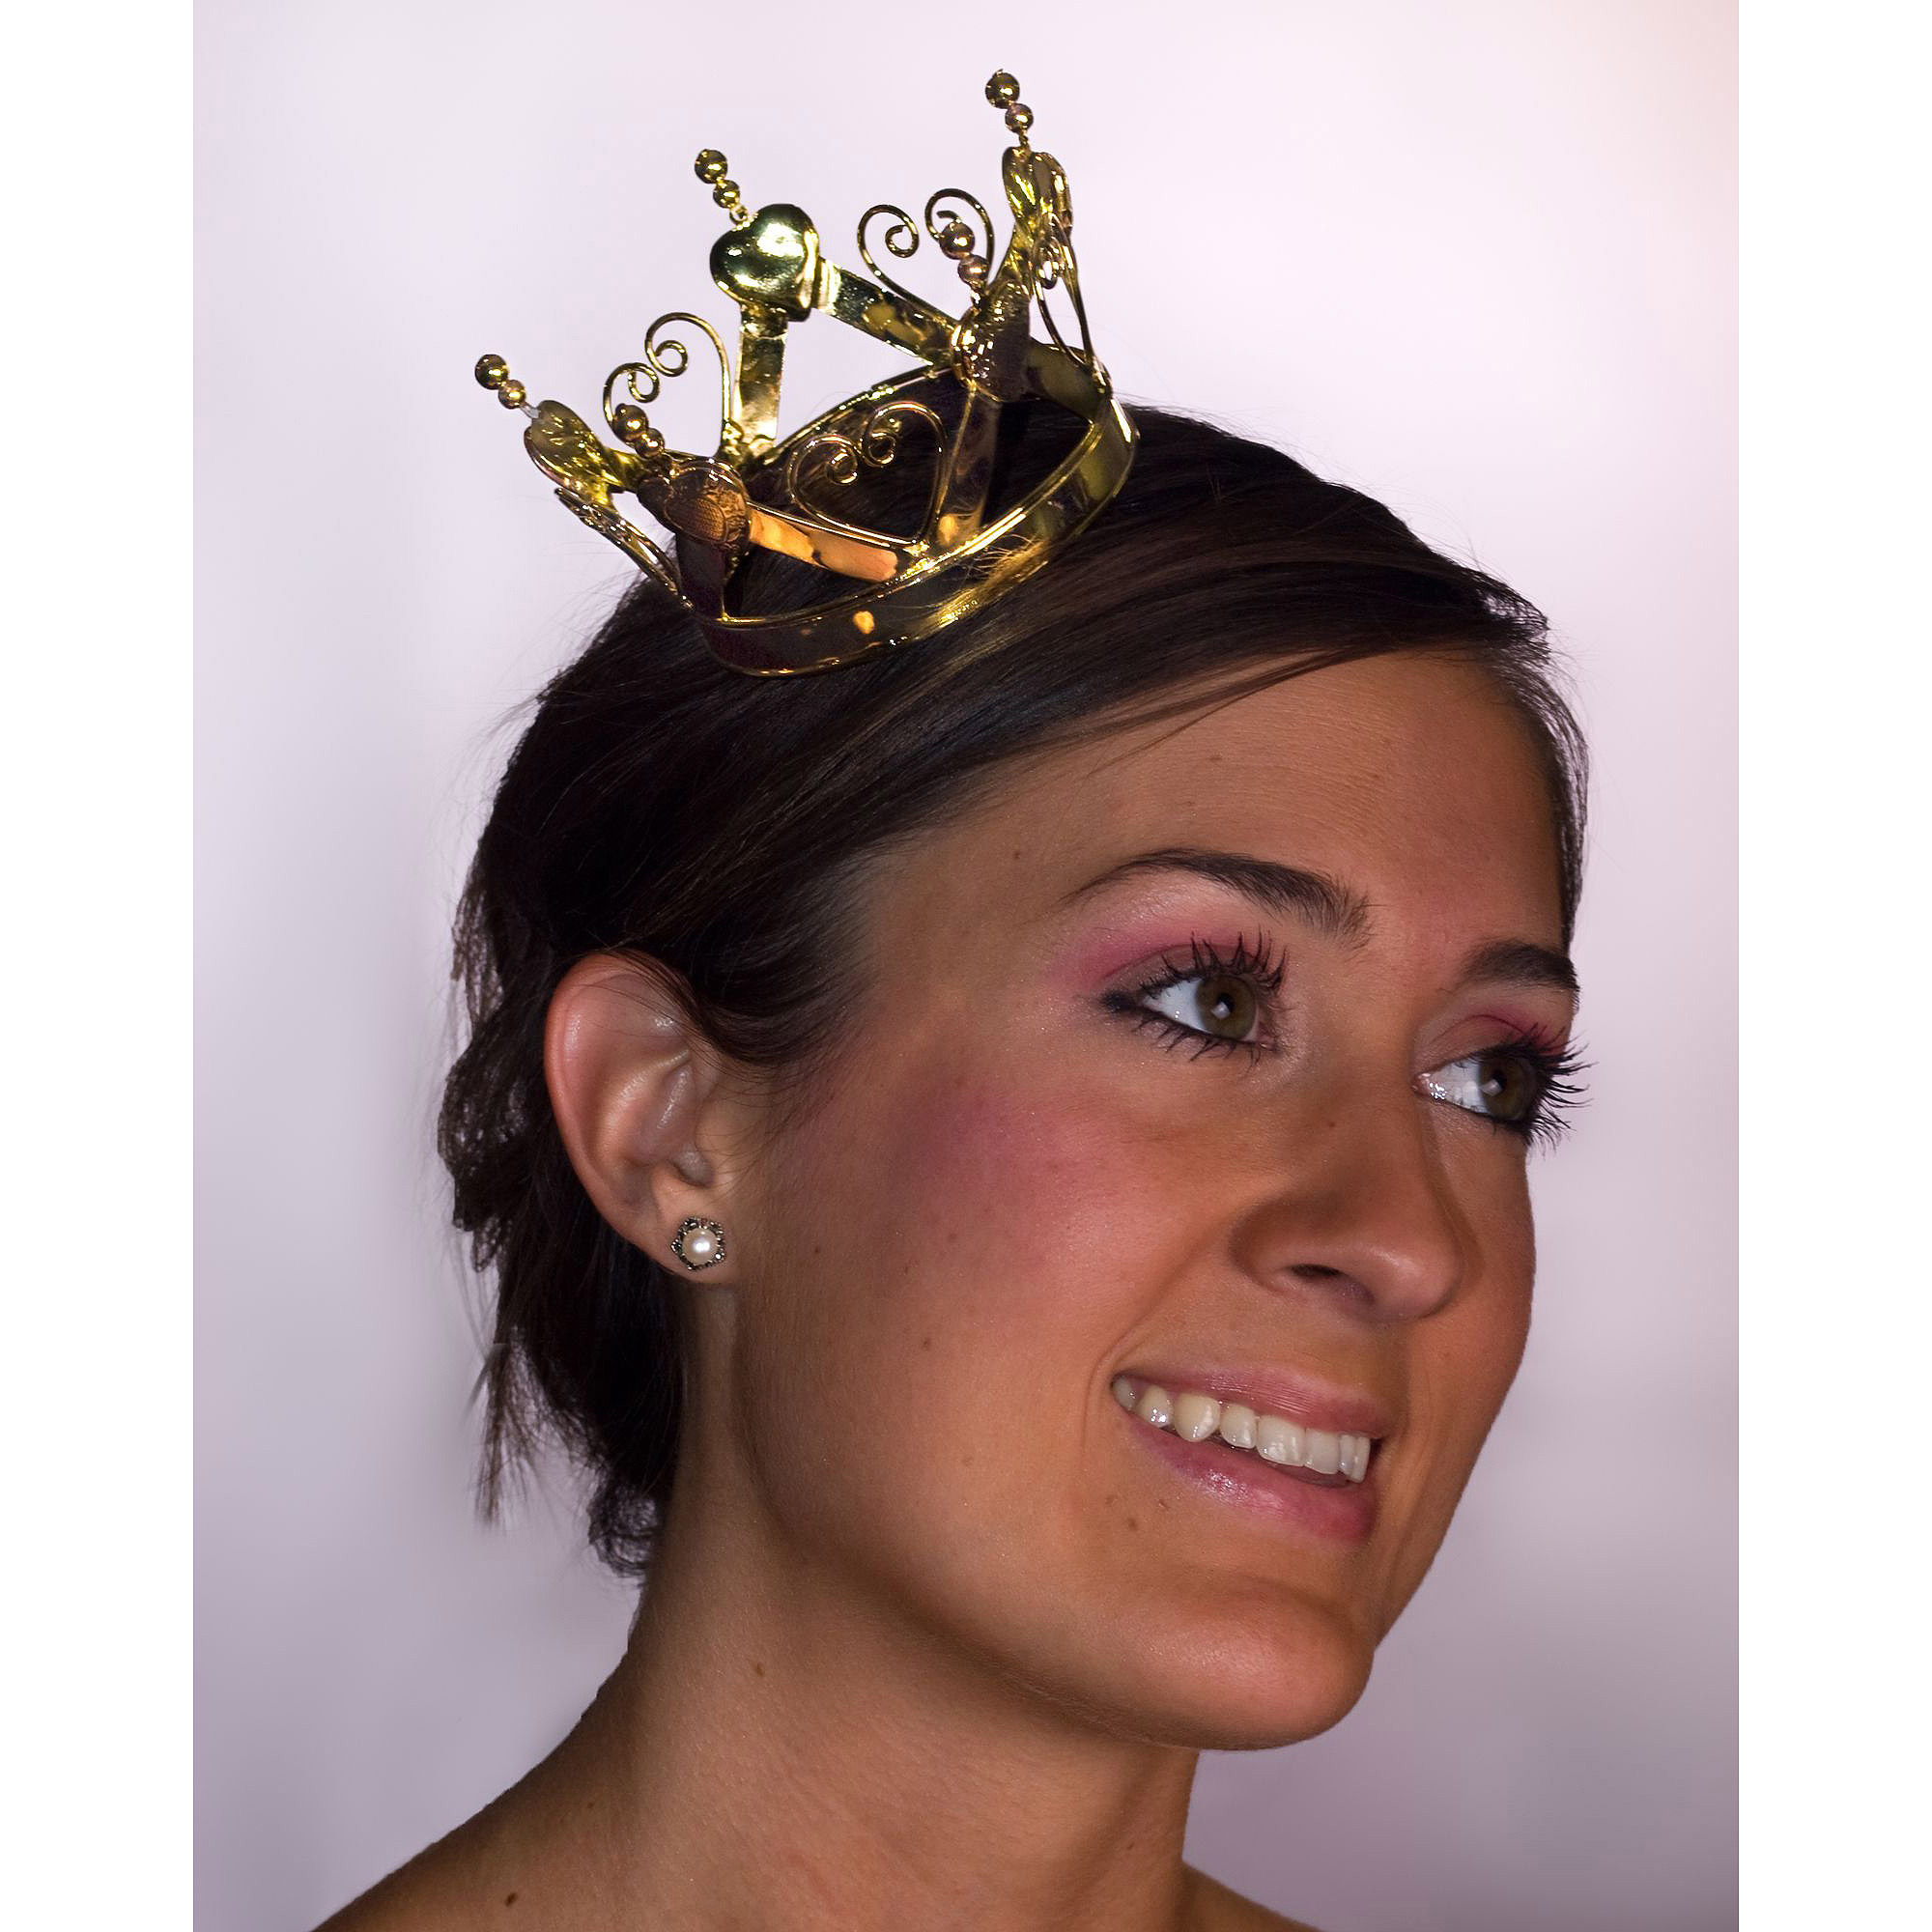 Sunnywood Mini Heart Crown Adult Costume Accessory